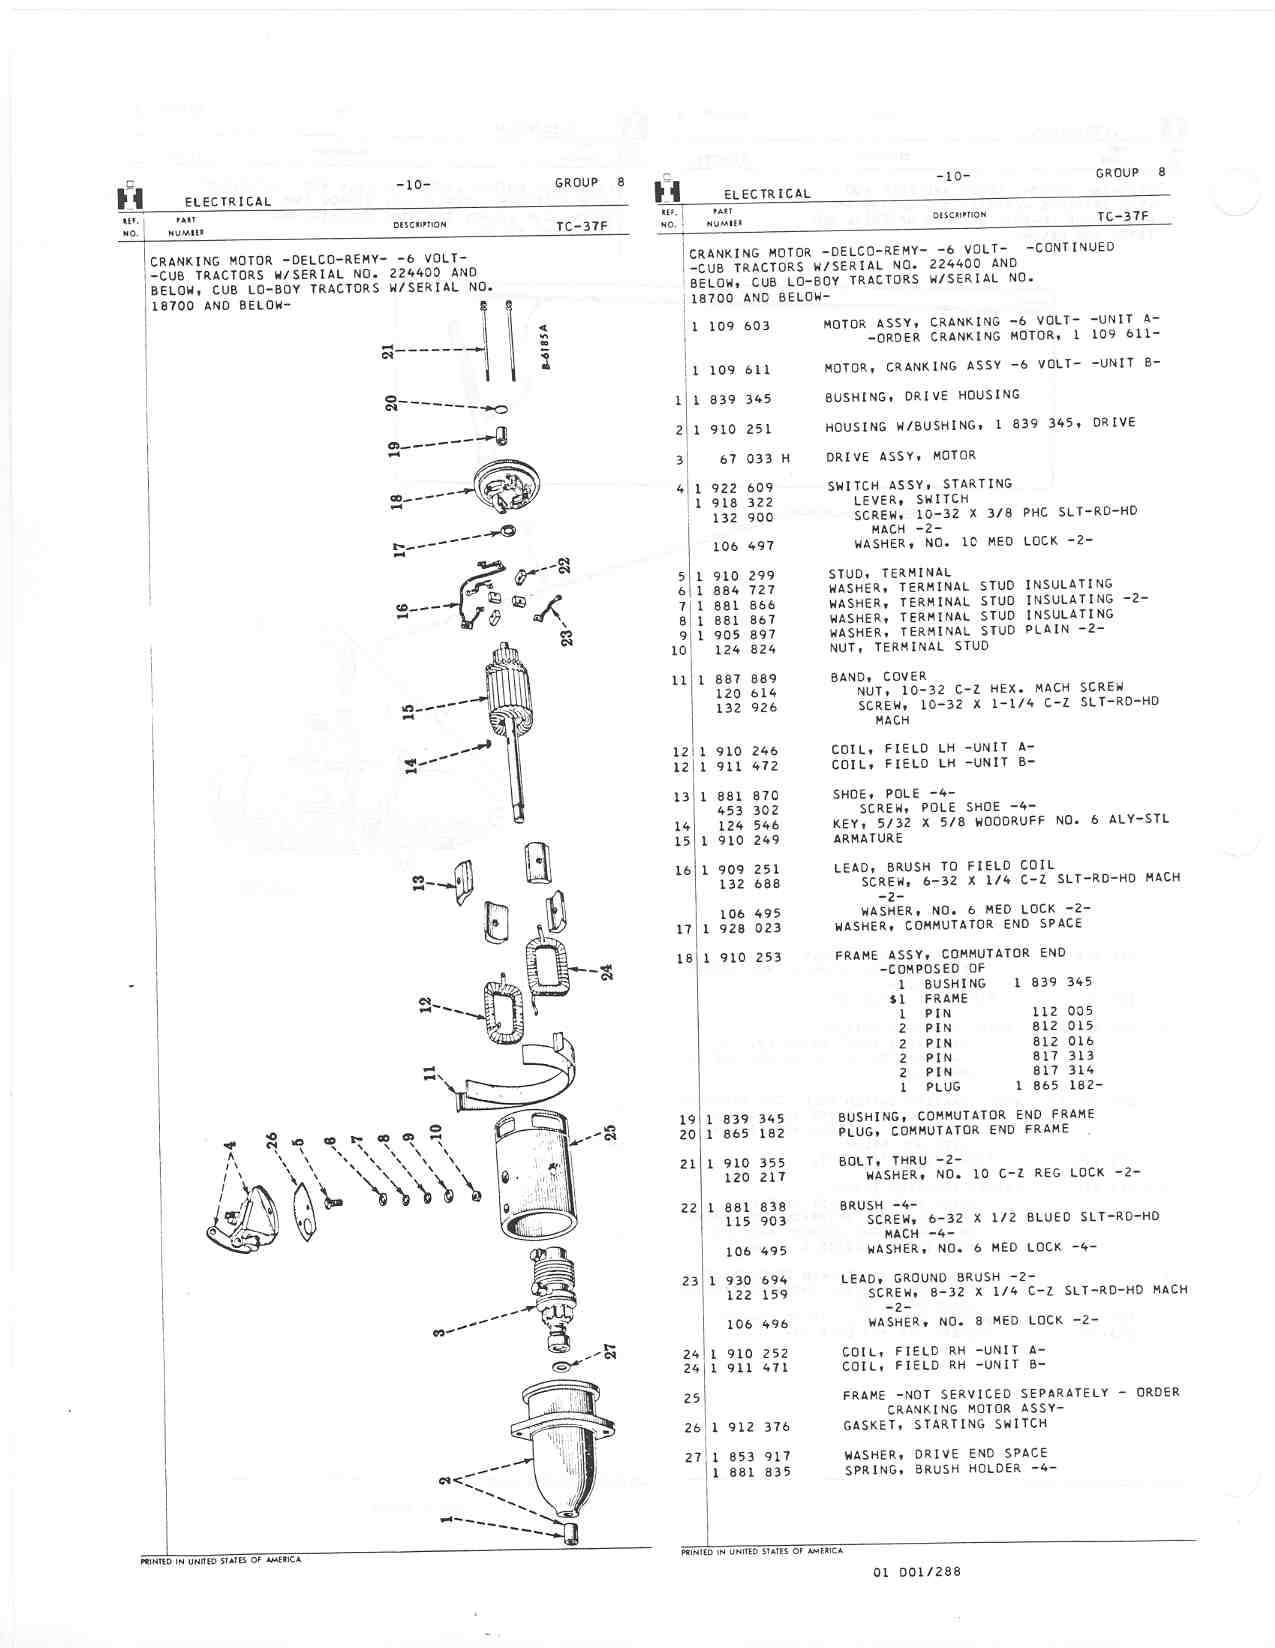 6 Volt Starter Parts Diagram Farmall Cub 6v Solenoid Wiring Http Farmallcubinfo Manuals 008 10